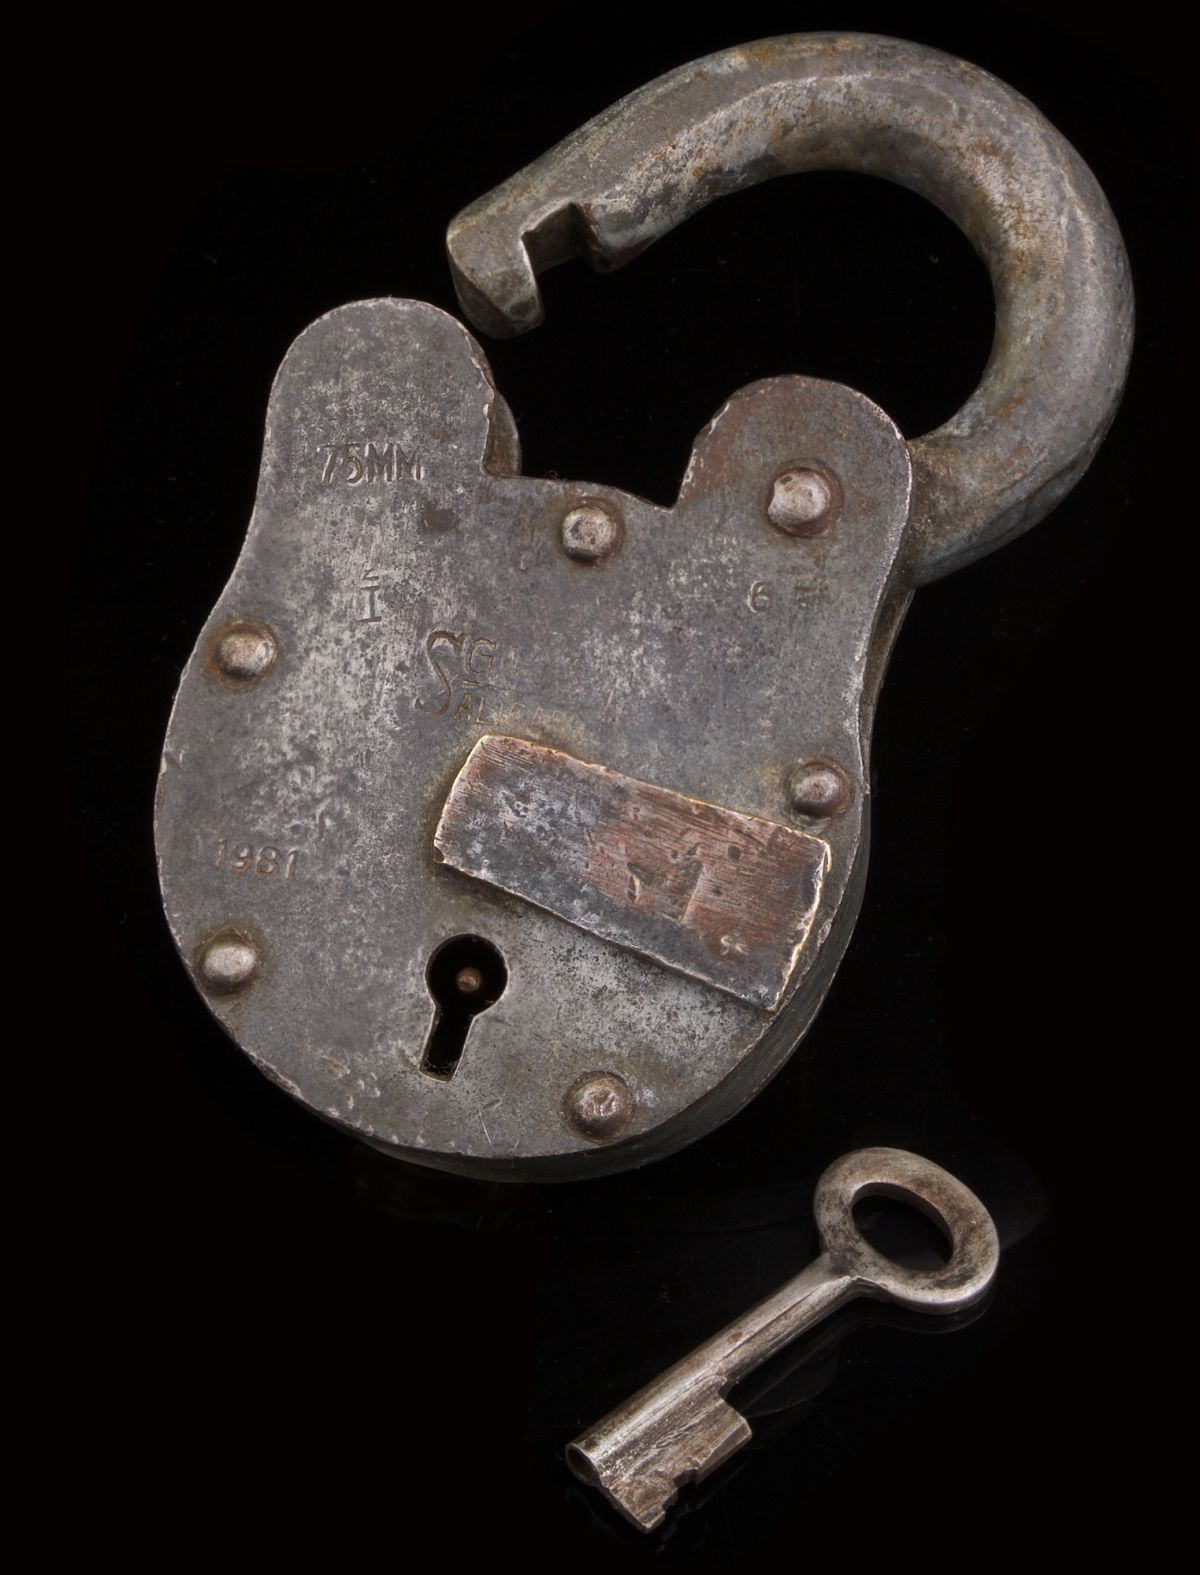 VINTAGE HANDCRAFTED ALIGARH 4 LEVER IRON PADLOCK 1981